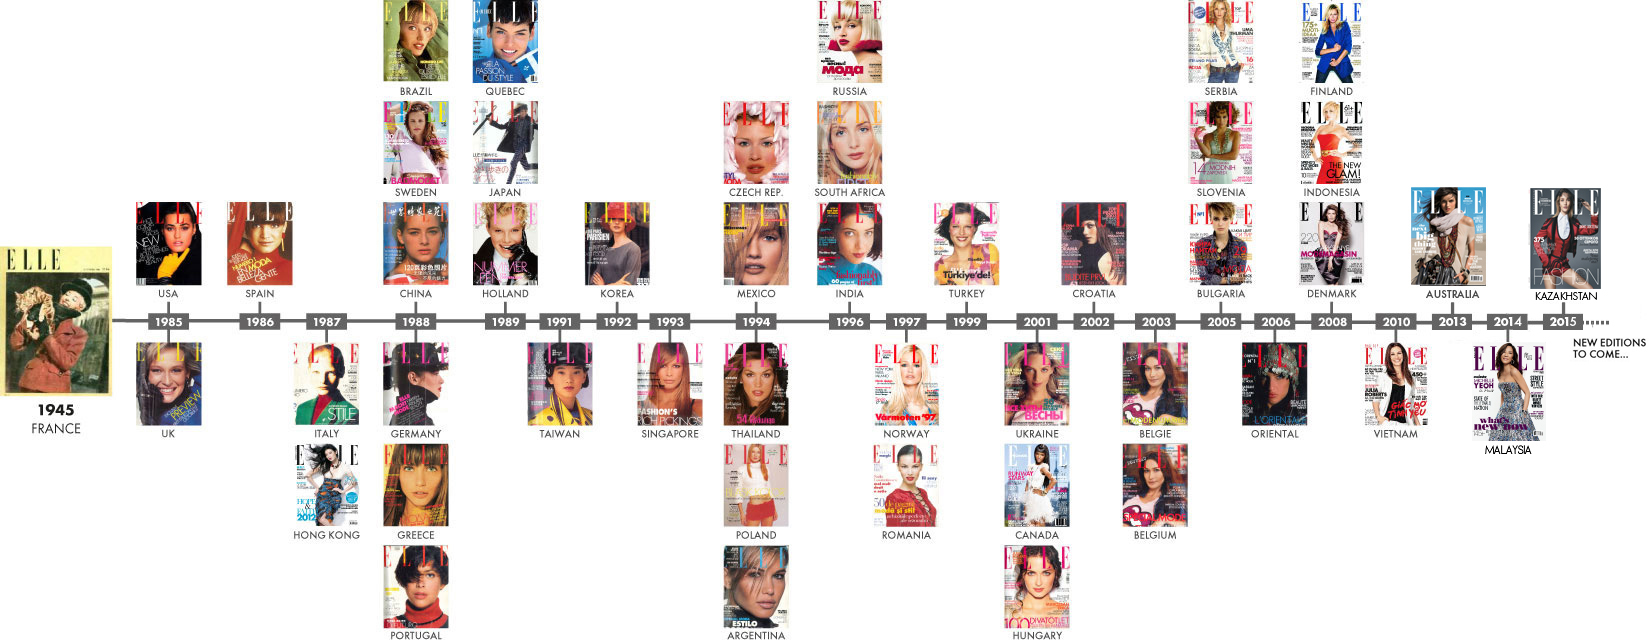 ELLE covers timeline